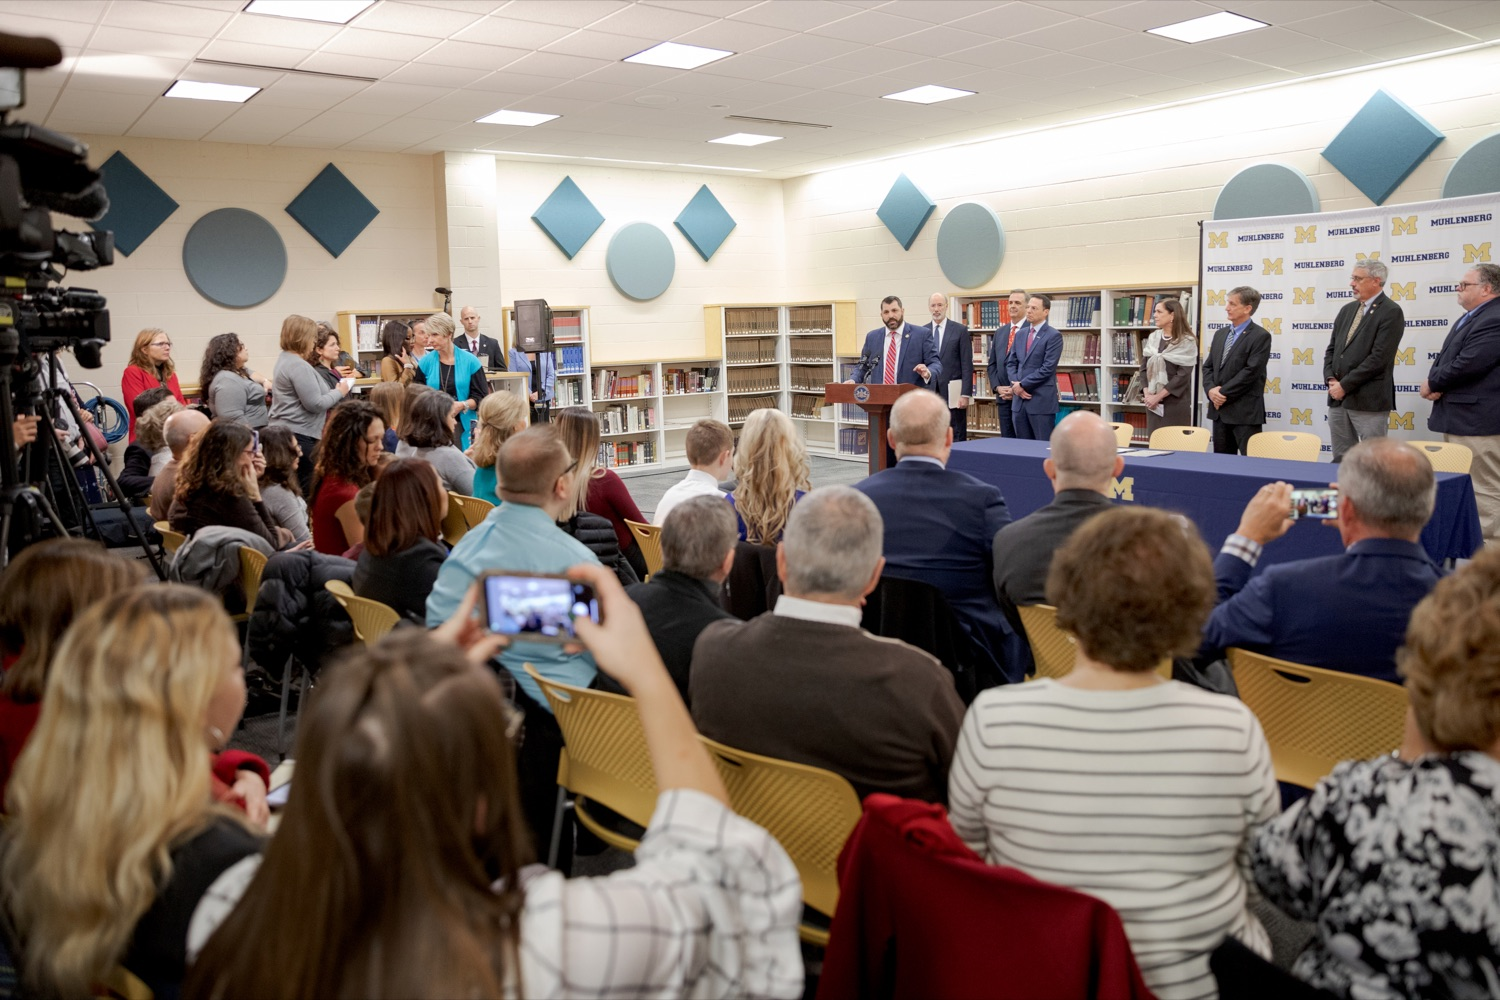 """<a href=""""http://filesource.abacast.com/commonwealthofpa/photo/17628_GOV_AG_Bill_Signing_NK_015.JPG"""" target=""""_blank"""">⇣Download Photo<br></a>State Rep. Mark Rozzi, a survivor of childhood sexual abuse, speaks before signing a package of three bills, which mirror three of the Grand Jurys recommendations on addressing the statute of limitations for victims of child sexual abuse, inside Muhlenberg High School on Tuesday, November 26, 2019. i"""